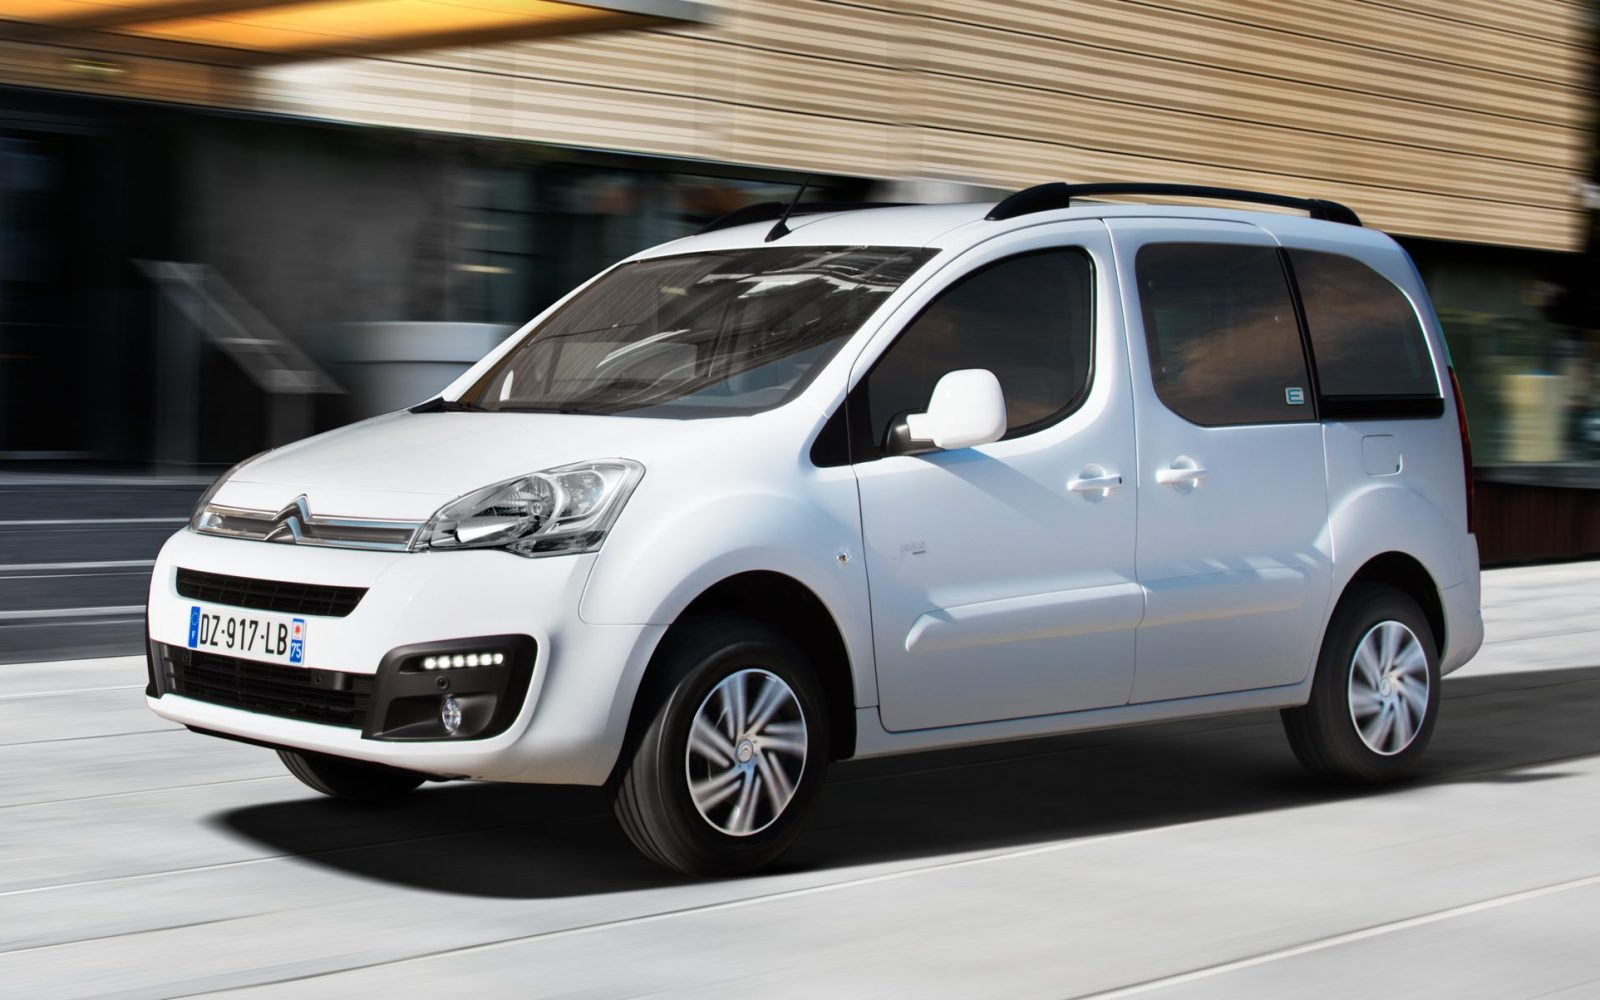 c2e20675a7 Citroën unveils an all-electric version of its Berlingo compact van ...